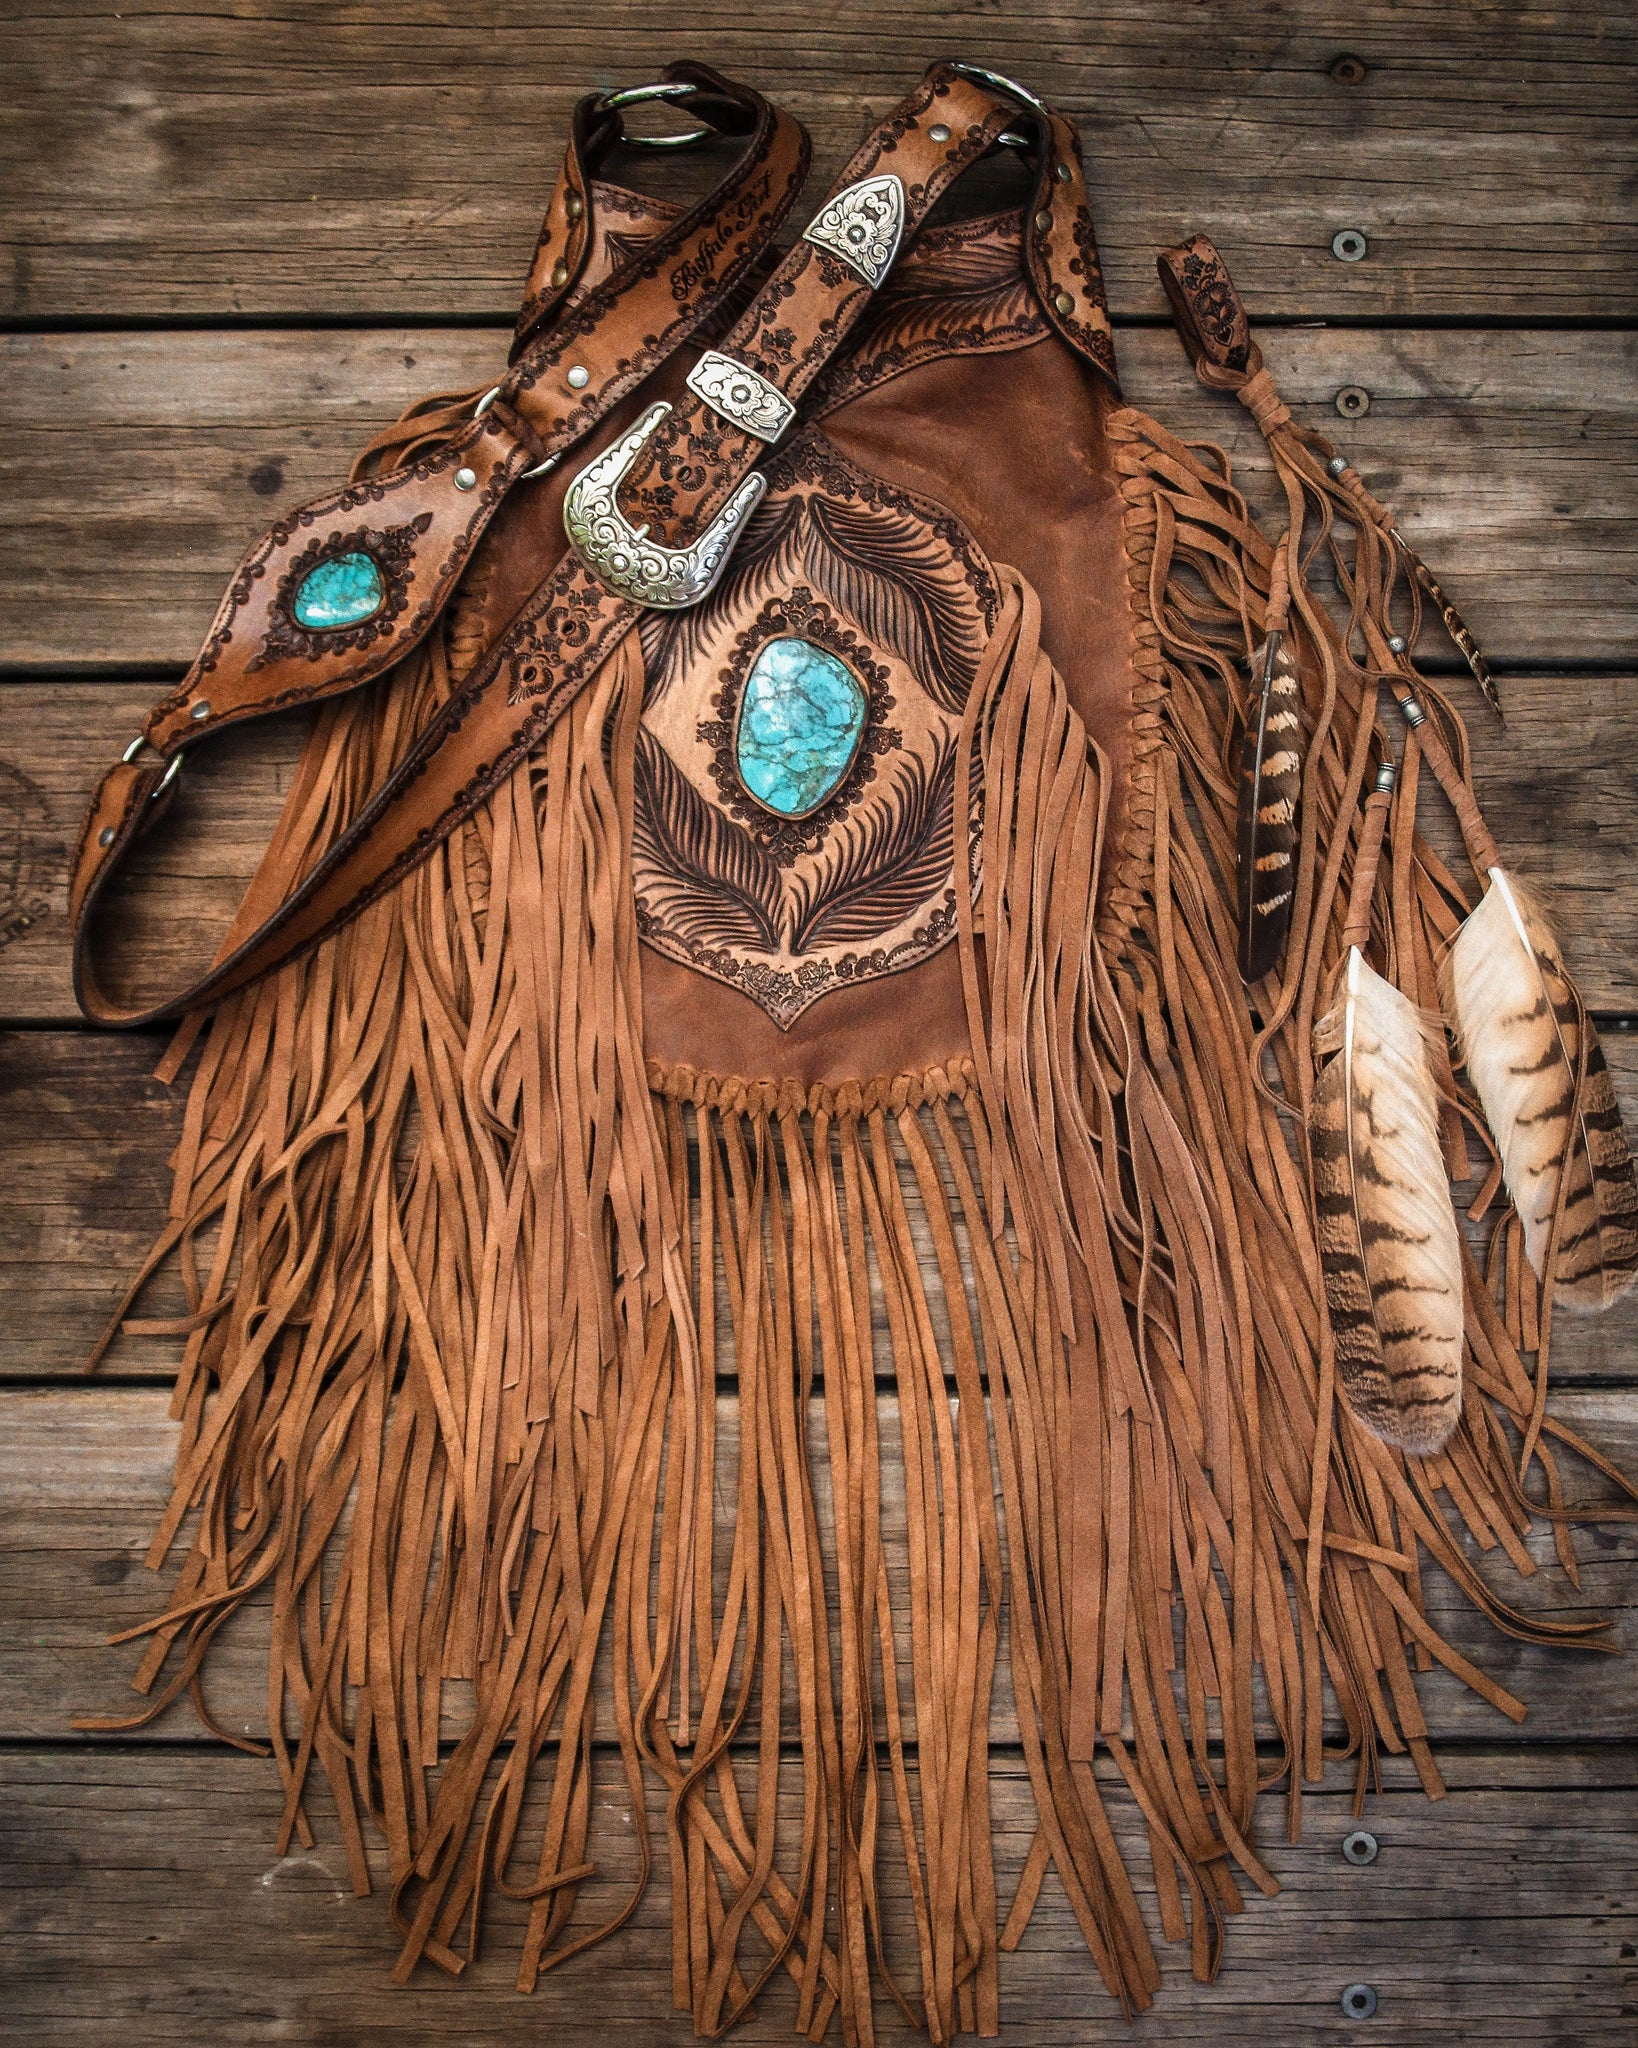 Apache Tasseled Bag with high grade Turquoise in distressed tan leather with suede tassels.